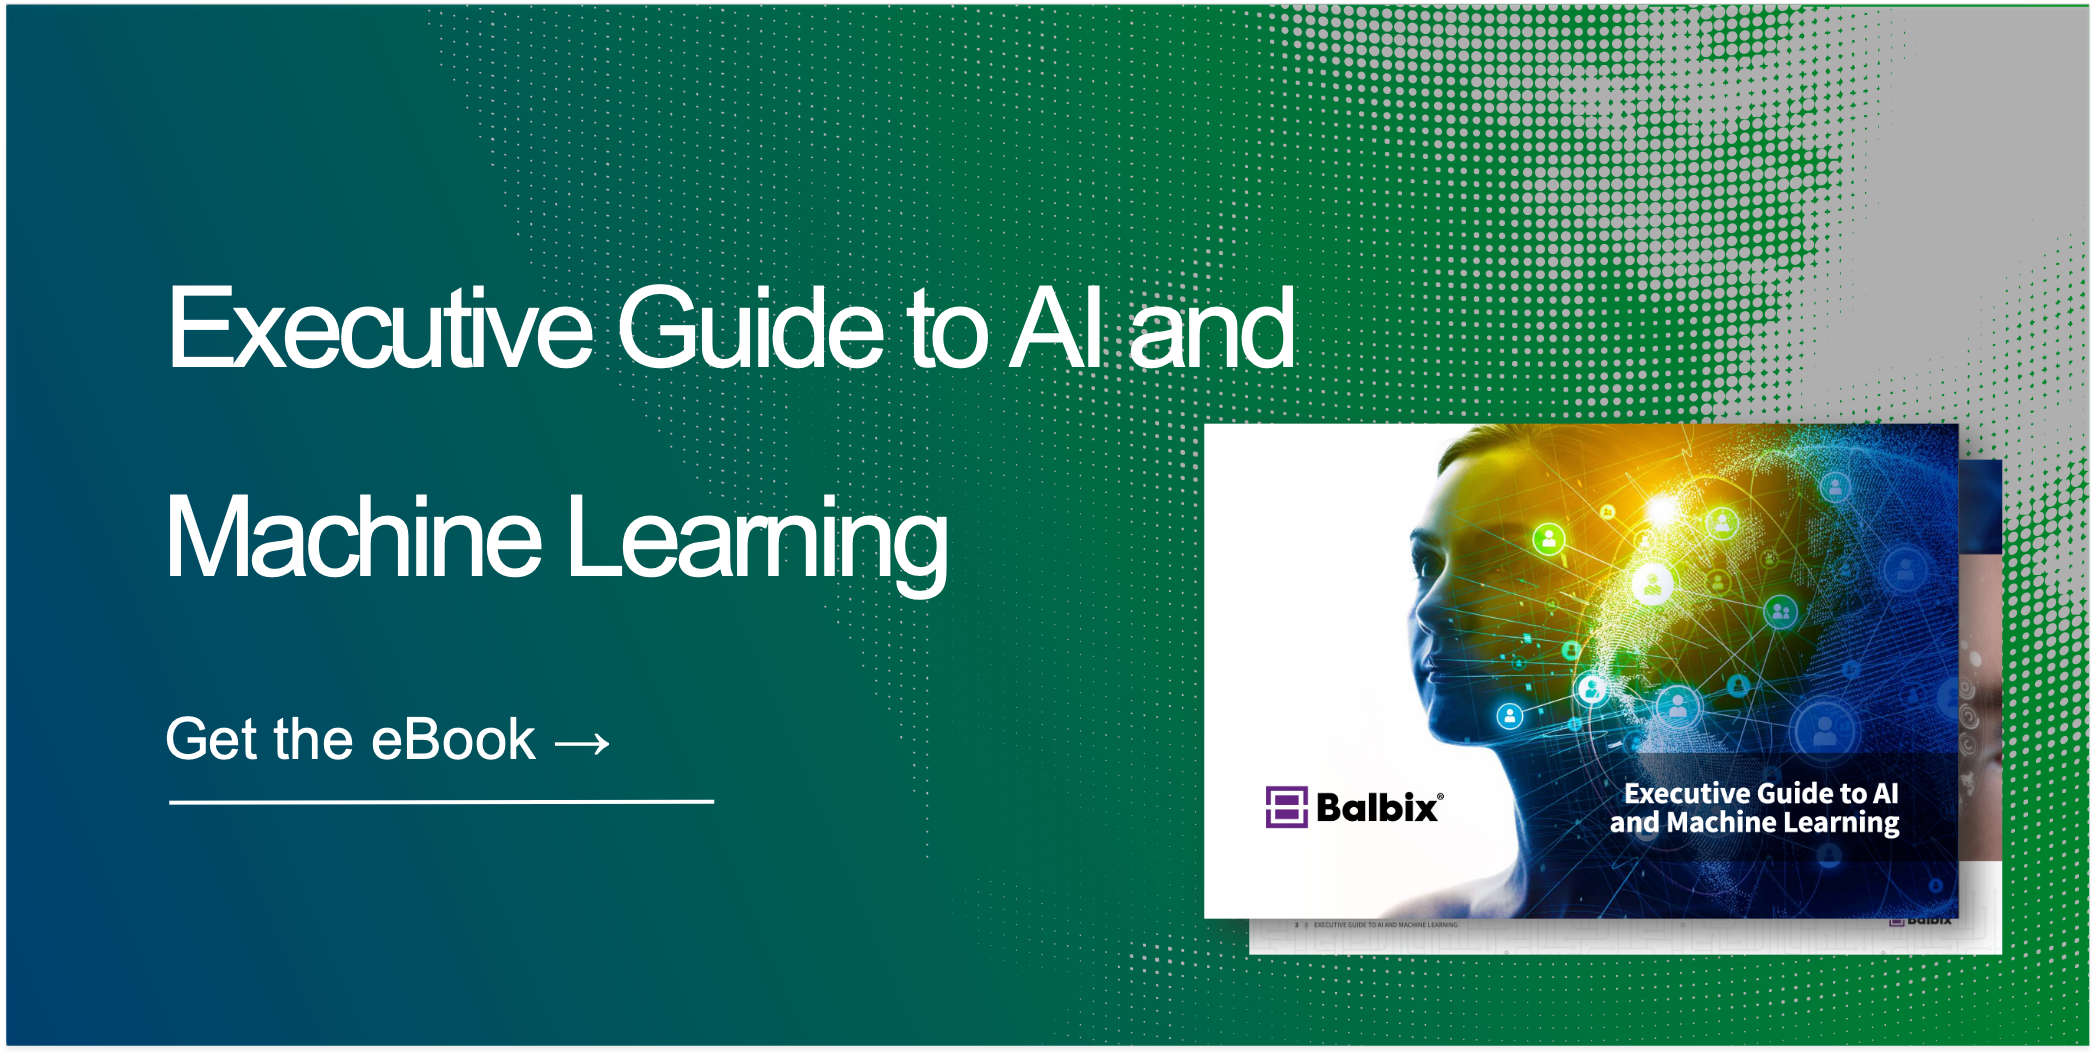 Executive guide to AI and Machine Learning